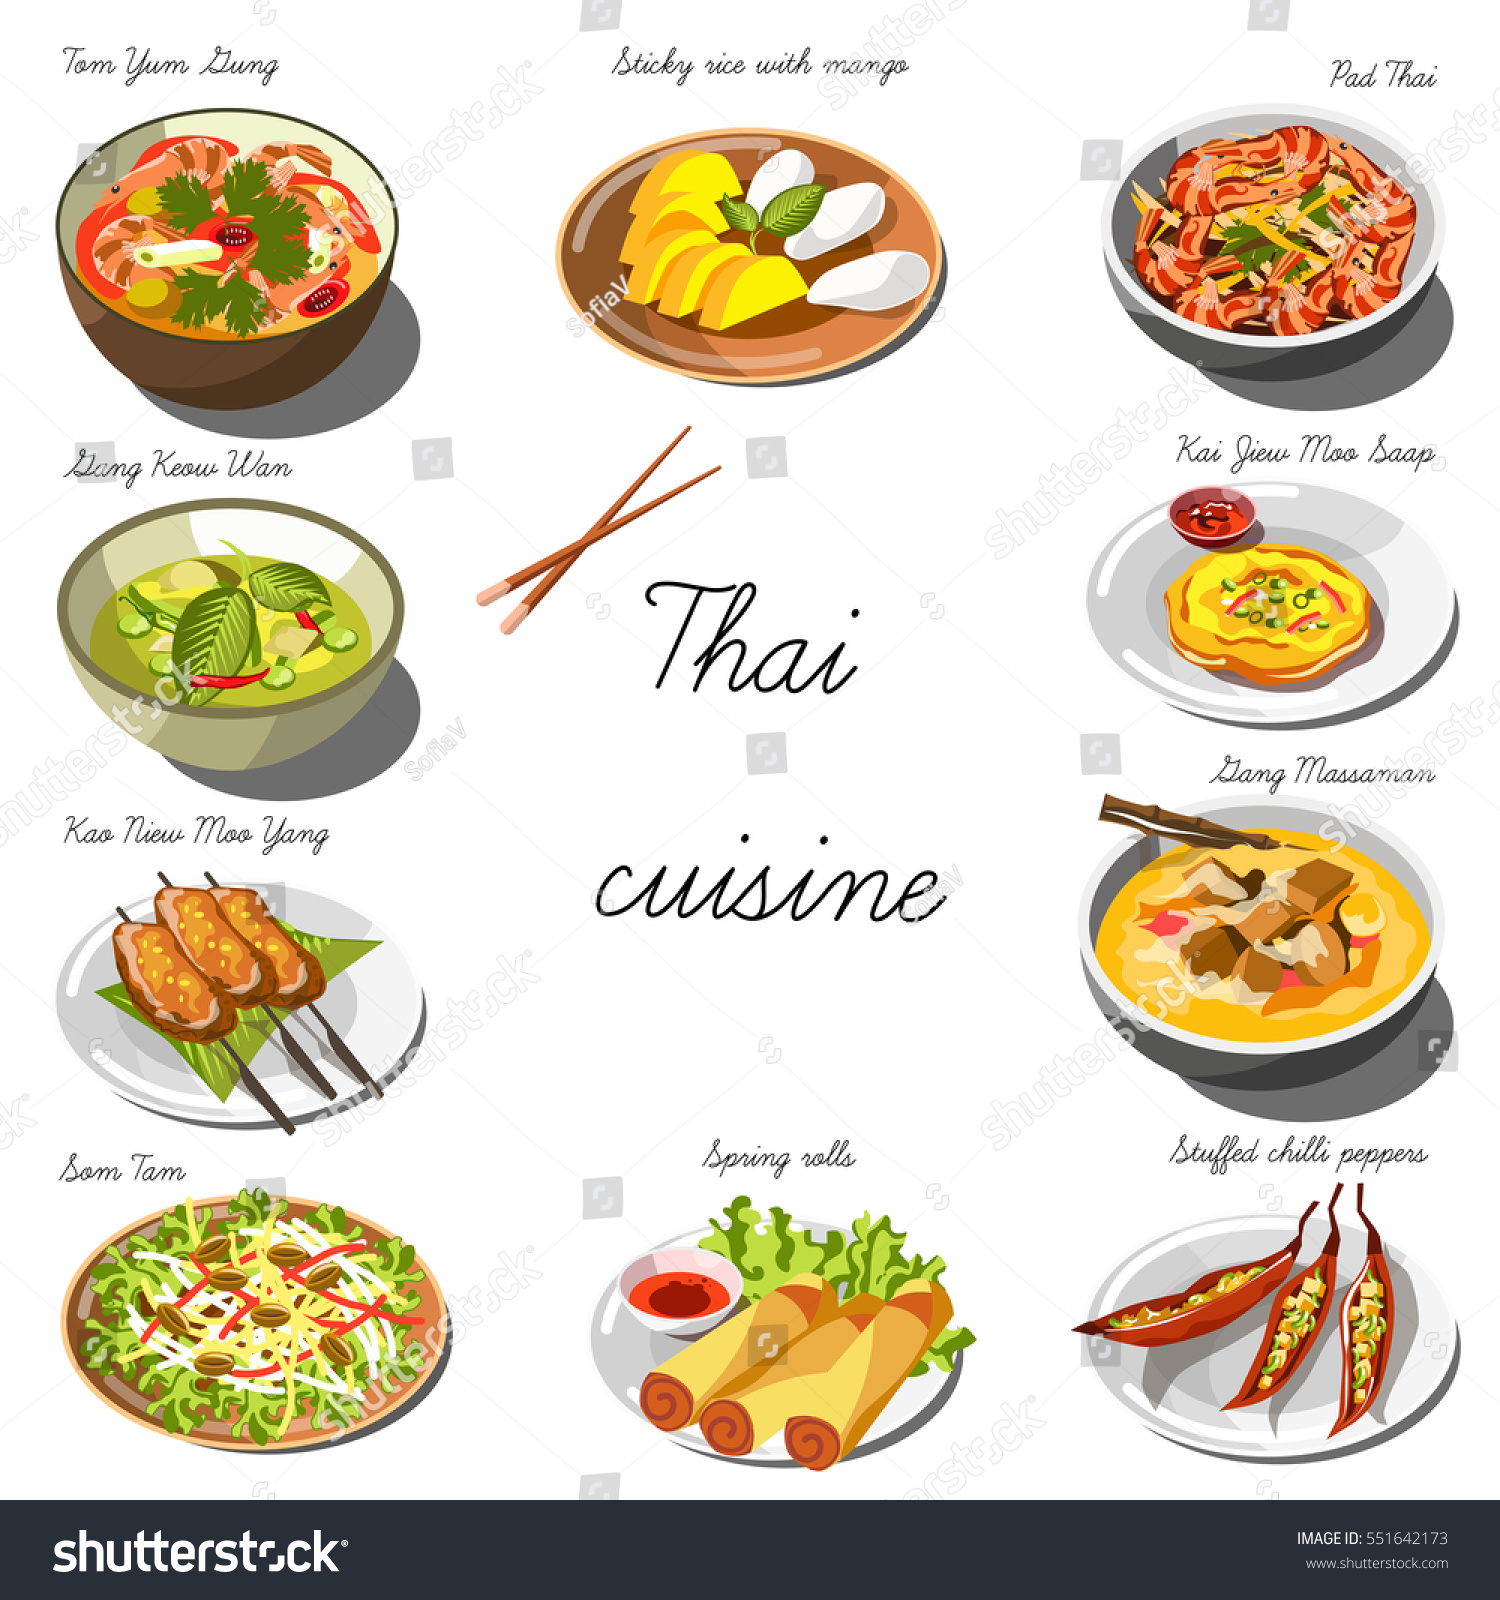 Thai cuisine set collection food dishes stock vector for About thai cuisine